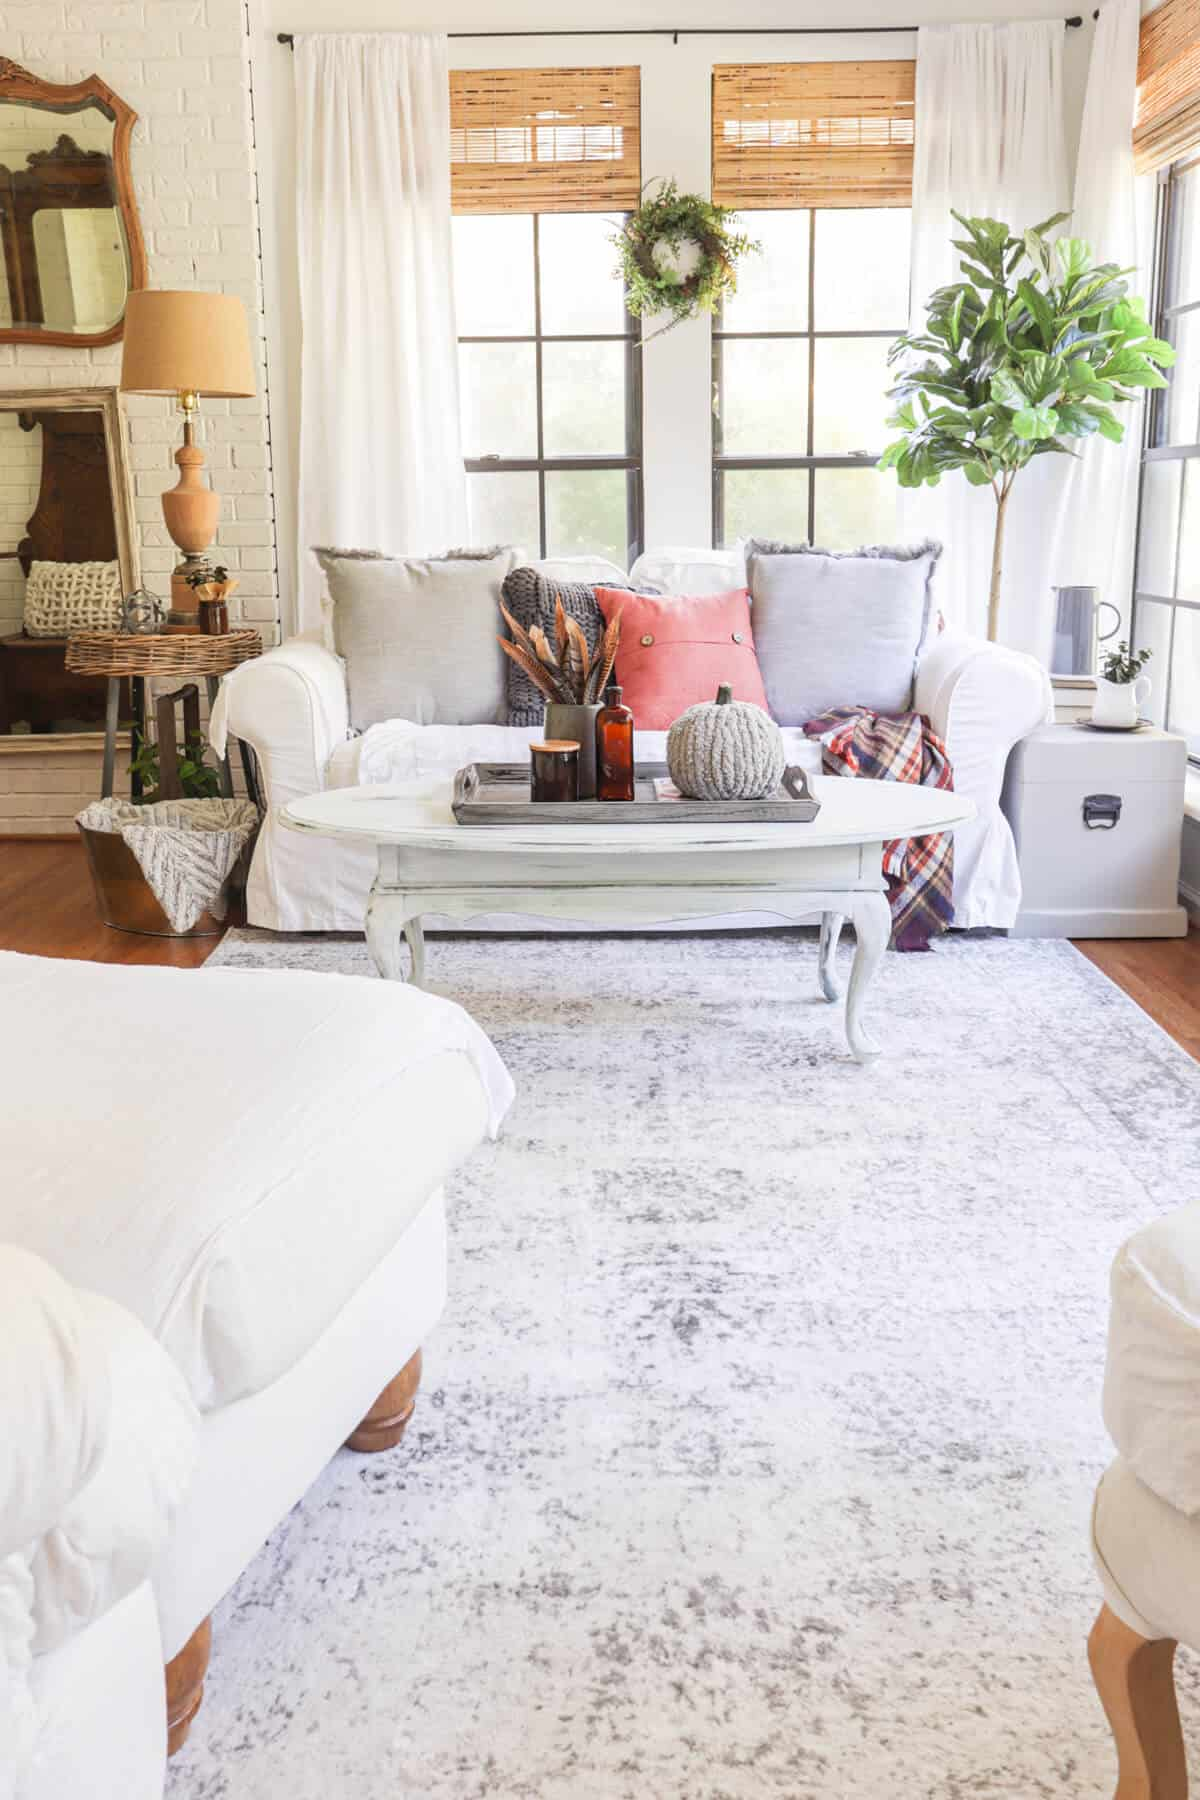 sun room with white sofa and gray rug. There are gray and orange pillows on the sofa and a coffee table with fall decor